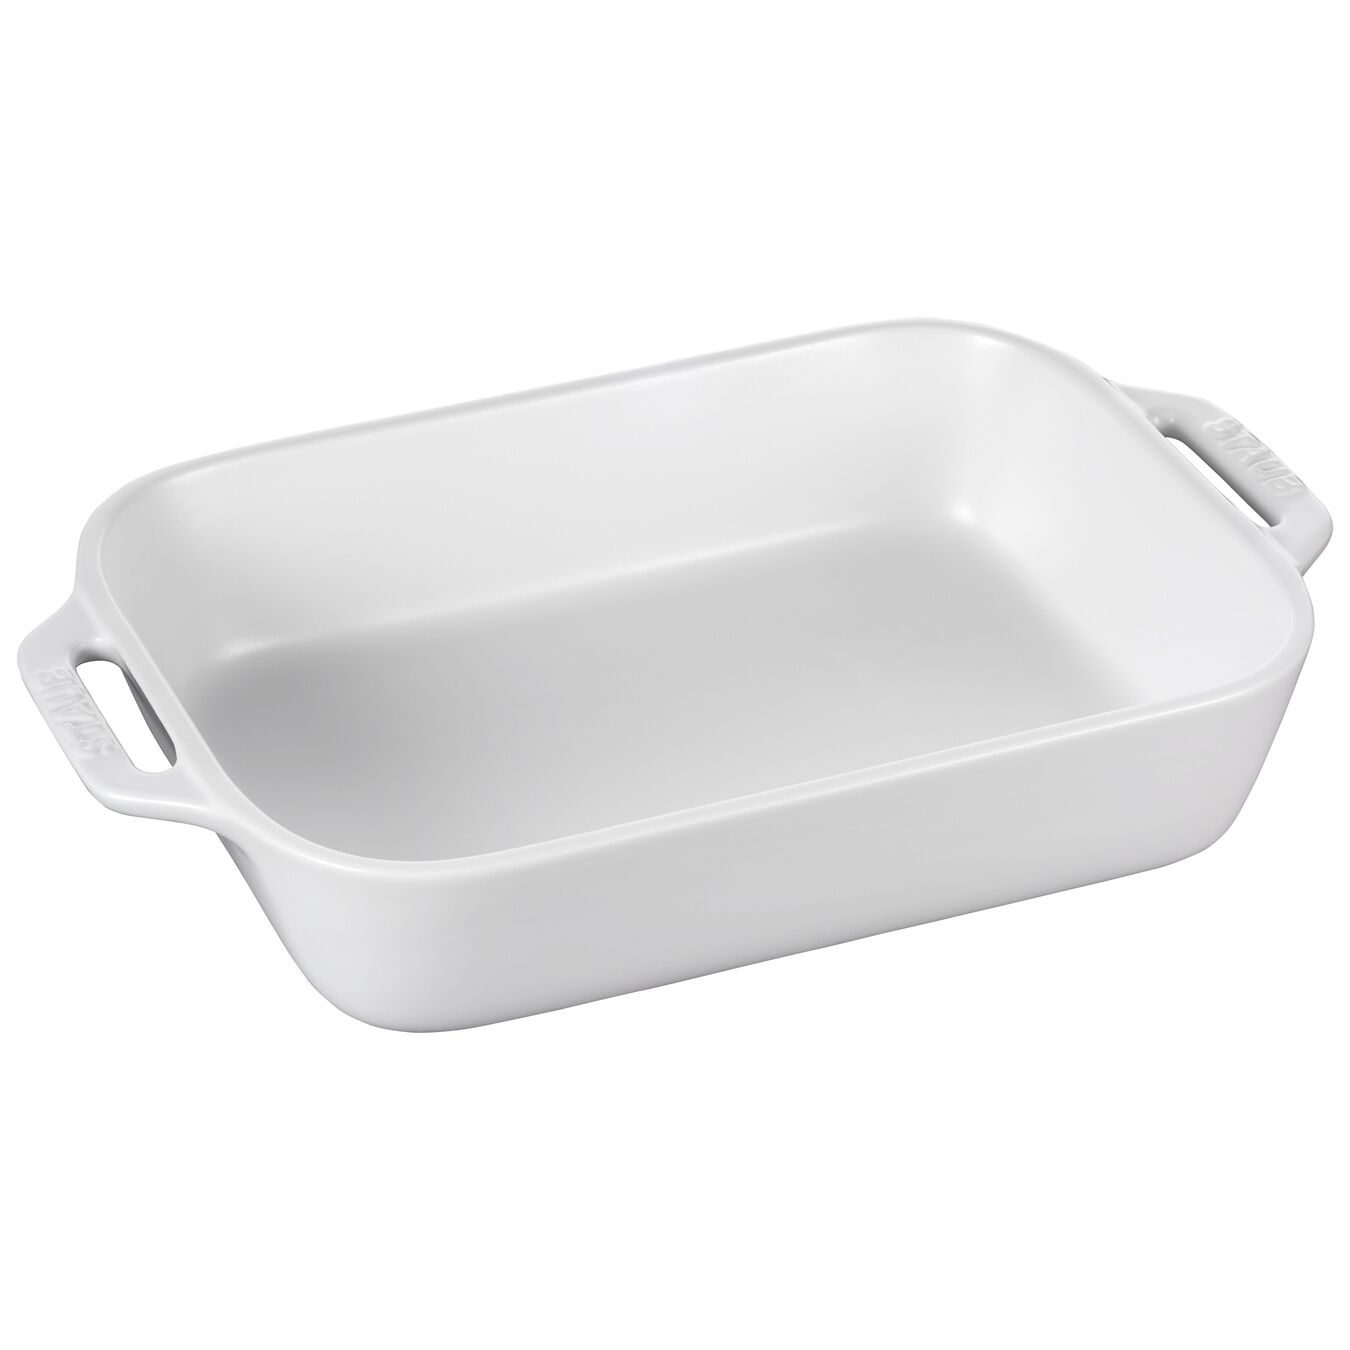 2-pc Rectangular Baking Dish Set - Matte White,,large 5